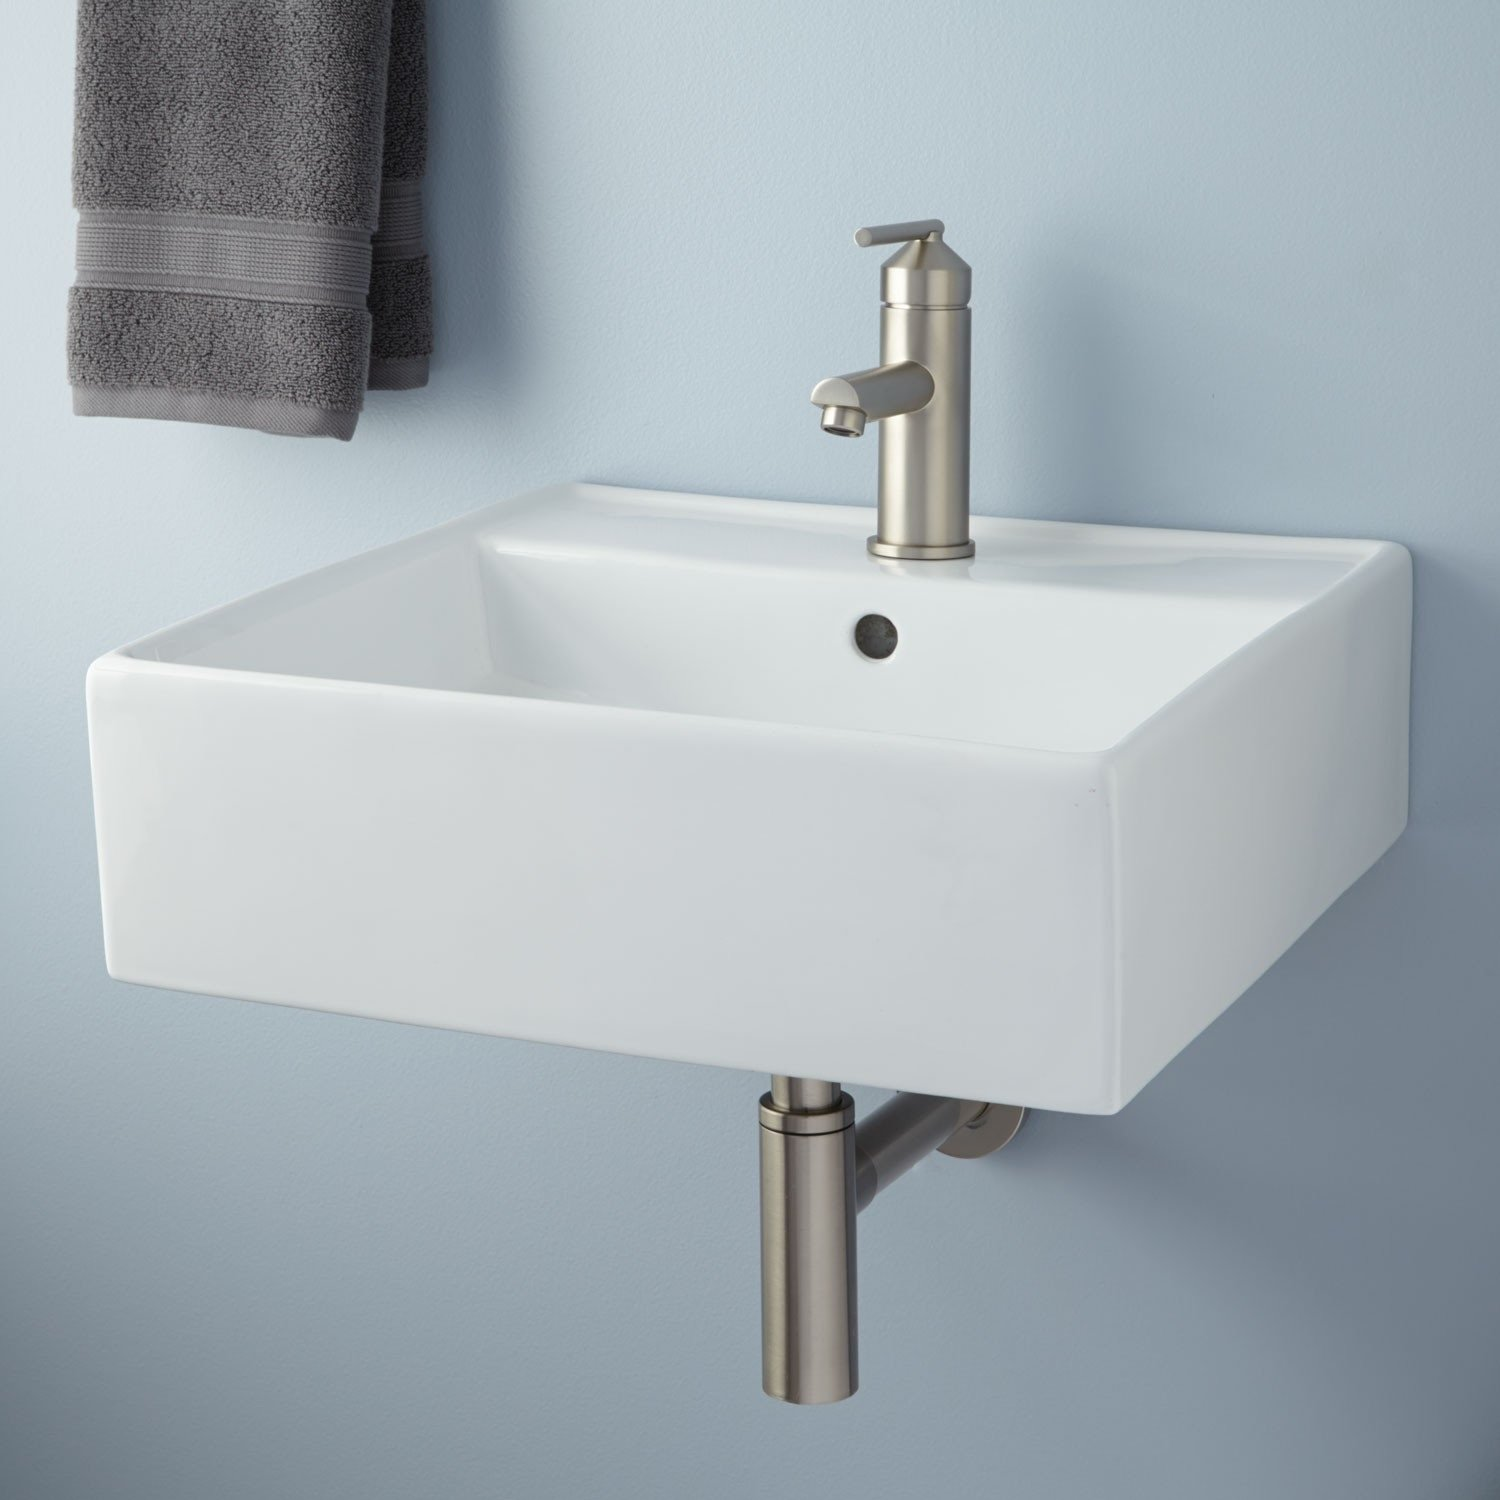 14 Diffe Types Of Bathroom Sinks